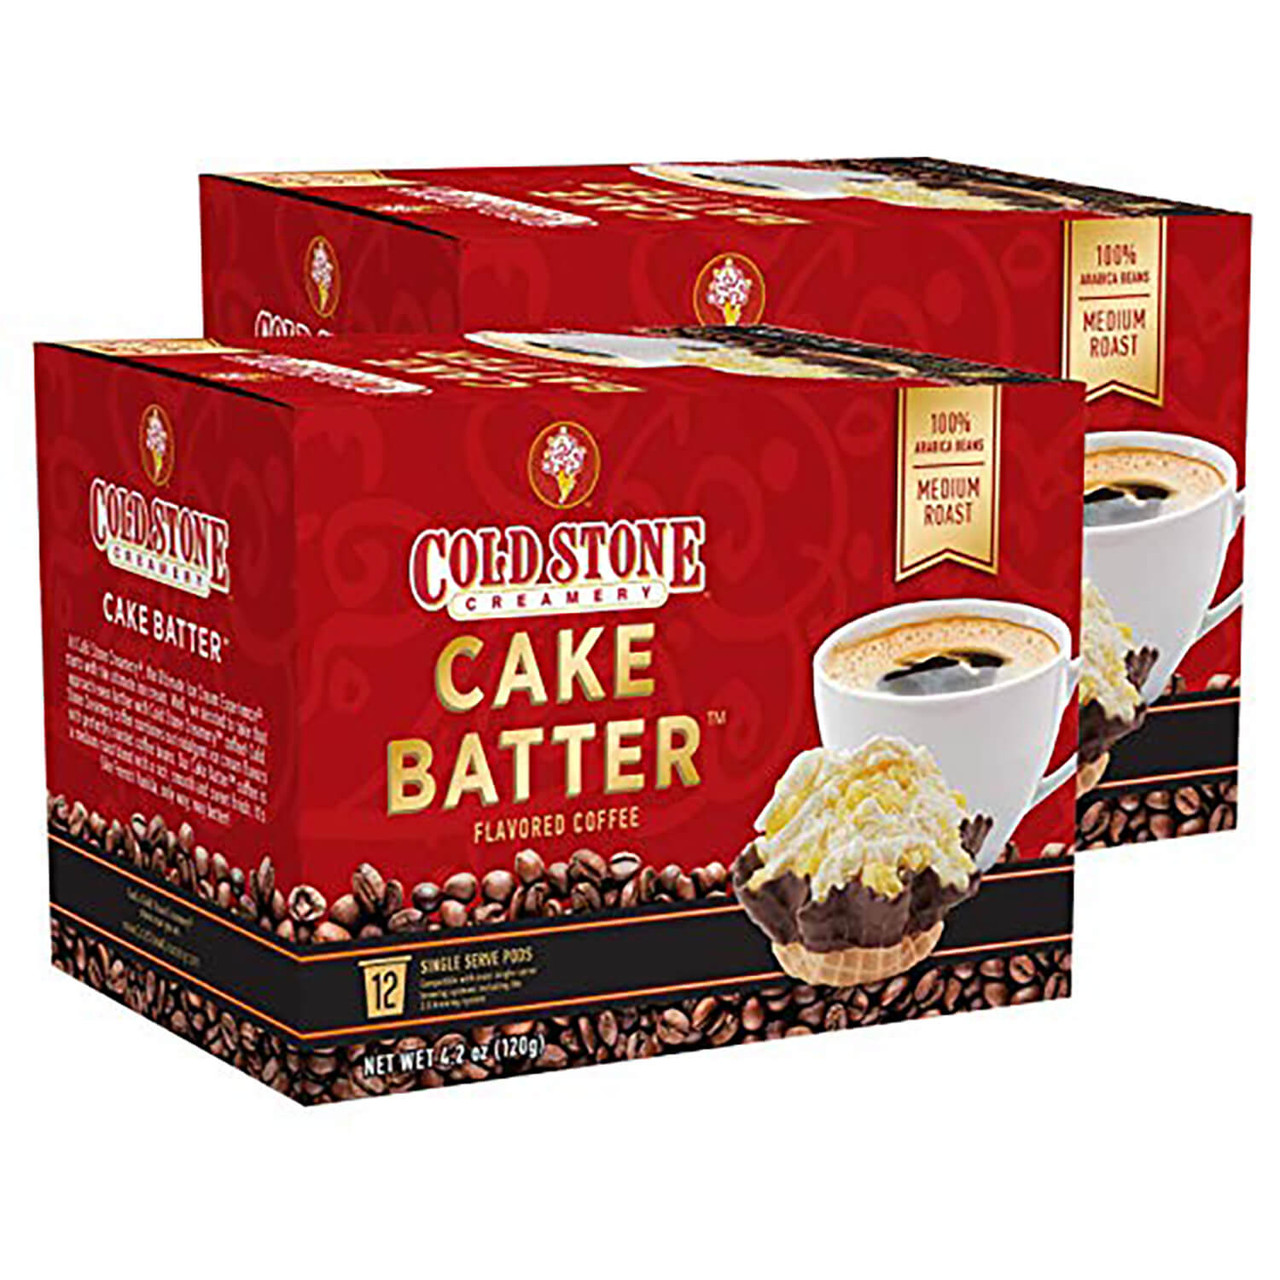 Cake Batter Flavored Coffee by Cold Stone Creamery